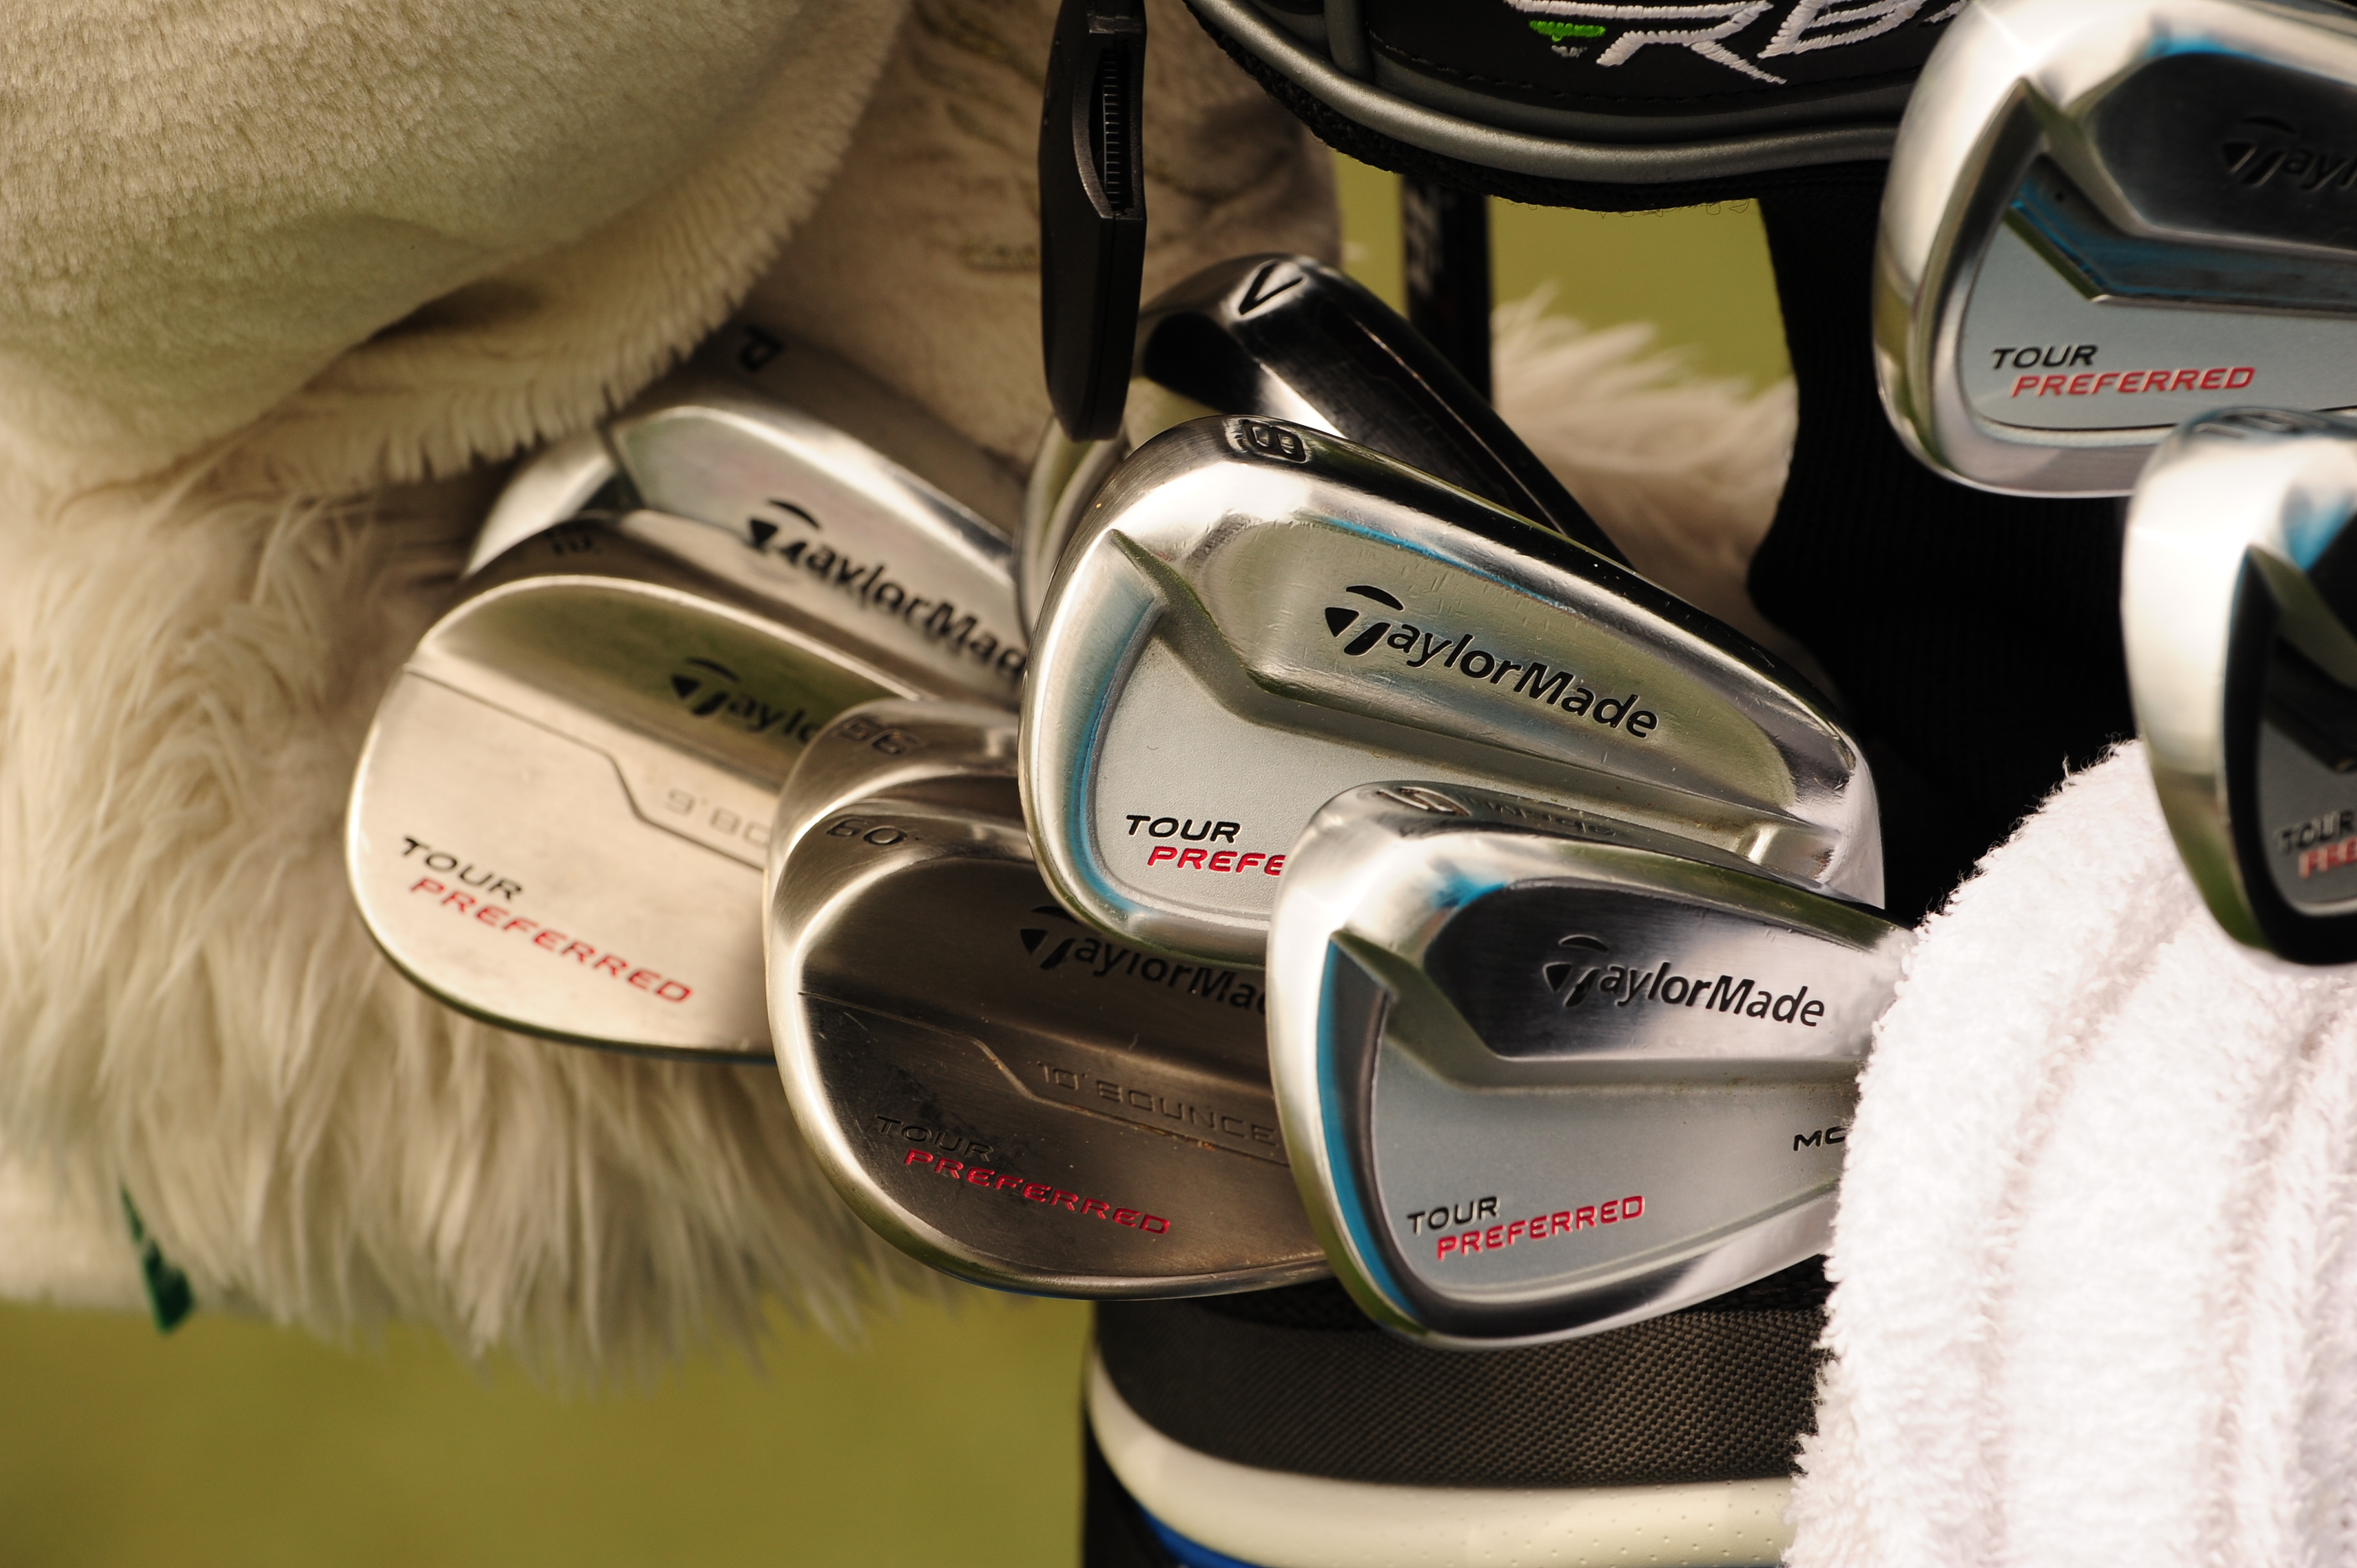 Two-time US Open champ Retief Goosen carries TaylorMade Tour Preferred MC irons, Tour Preferred wedges, and an RBZ fairway wood.